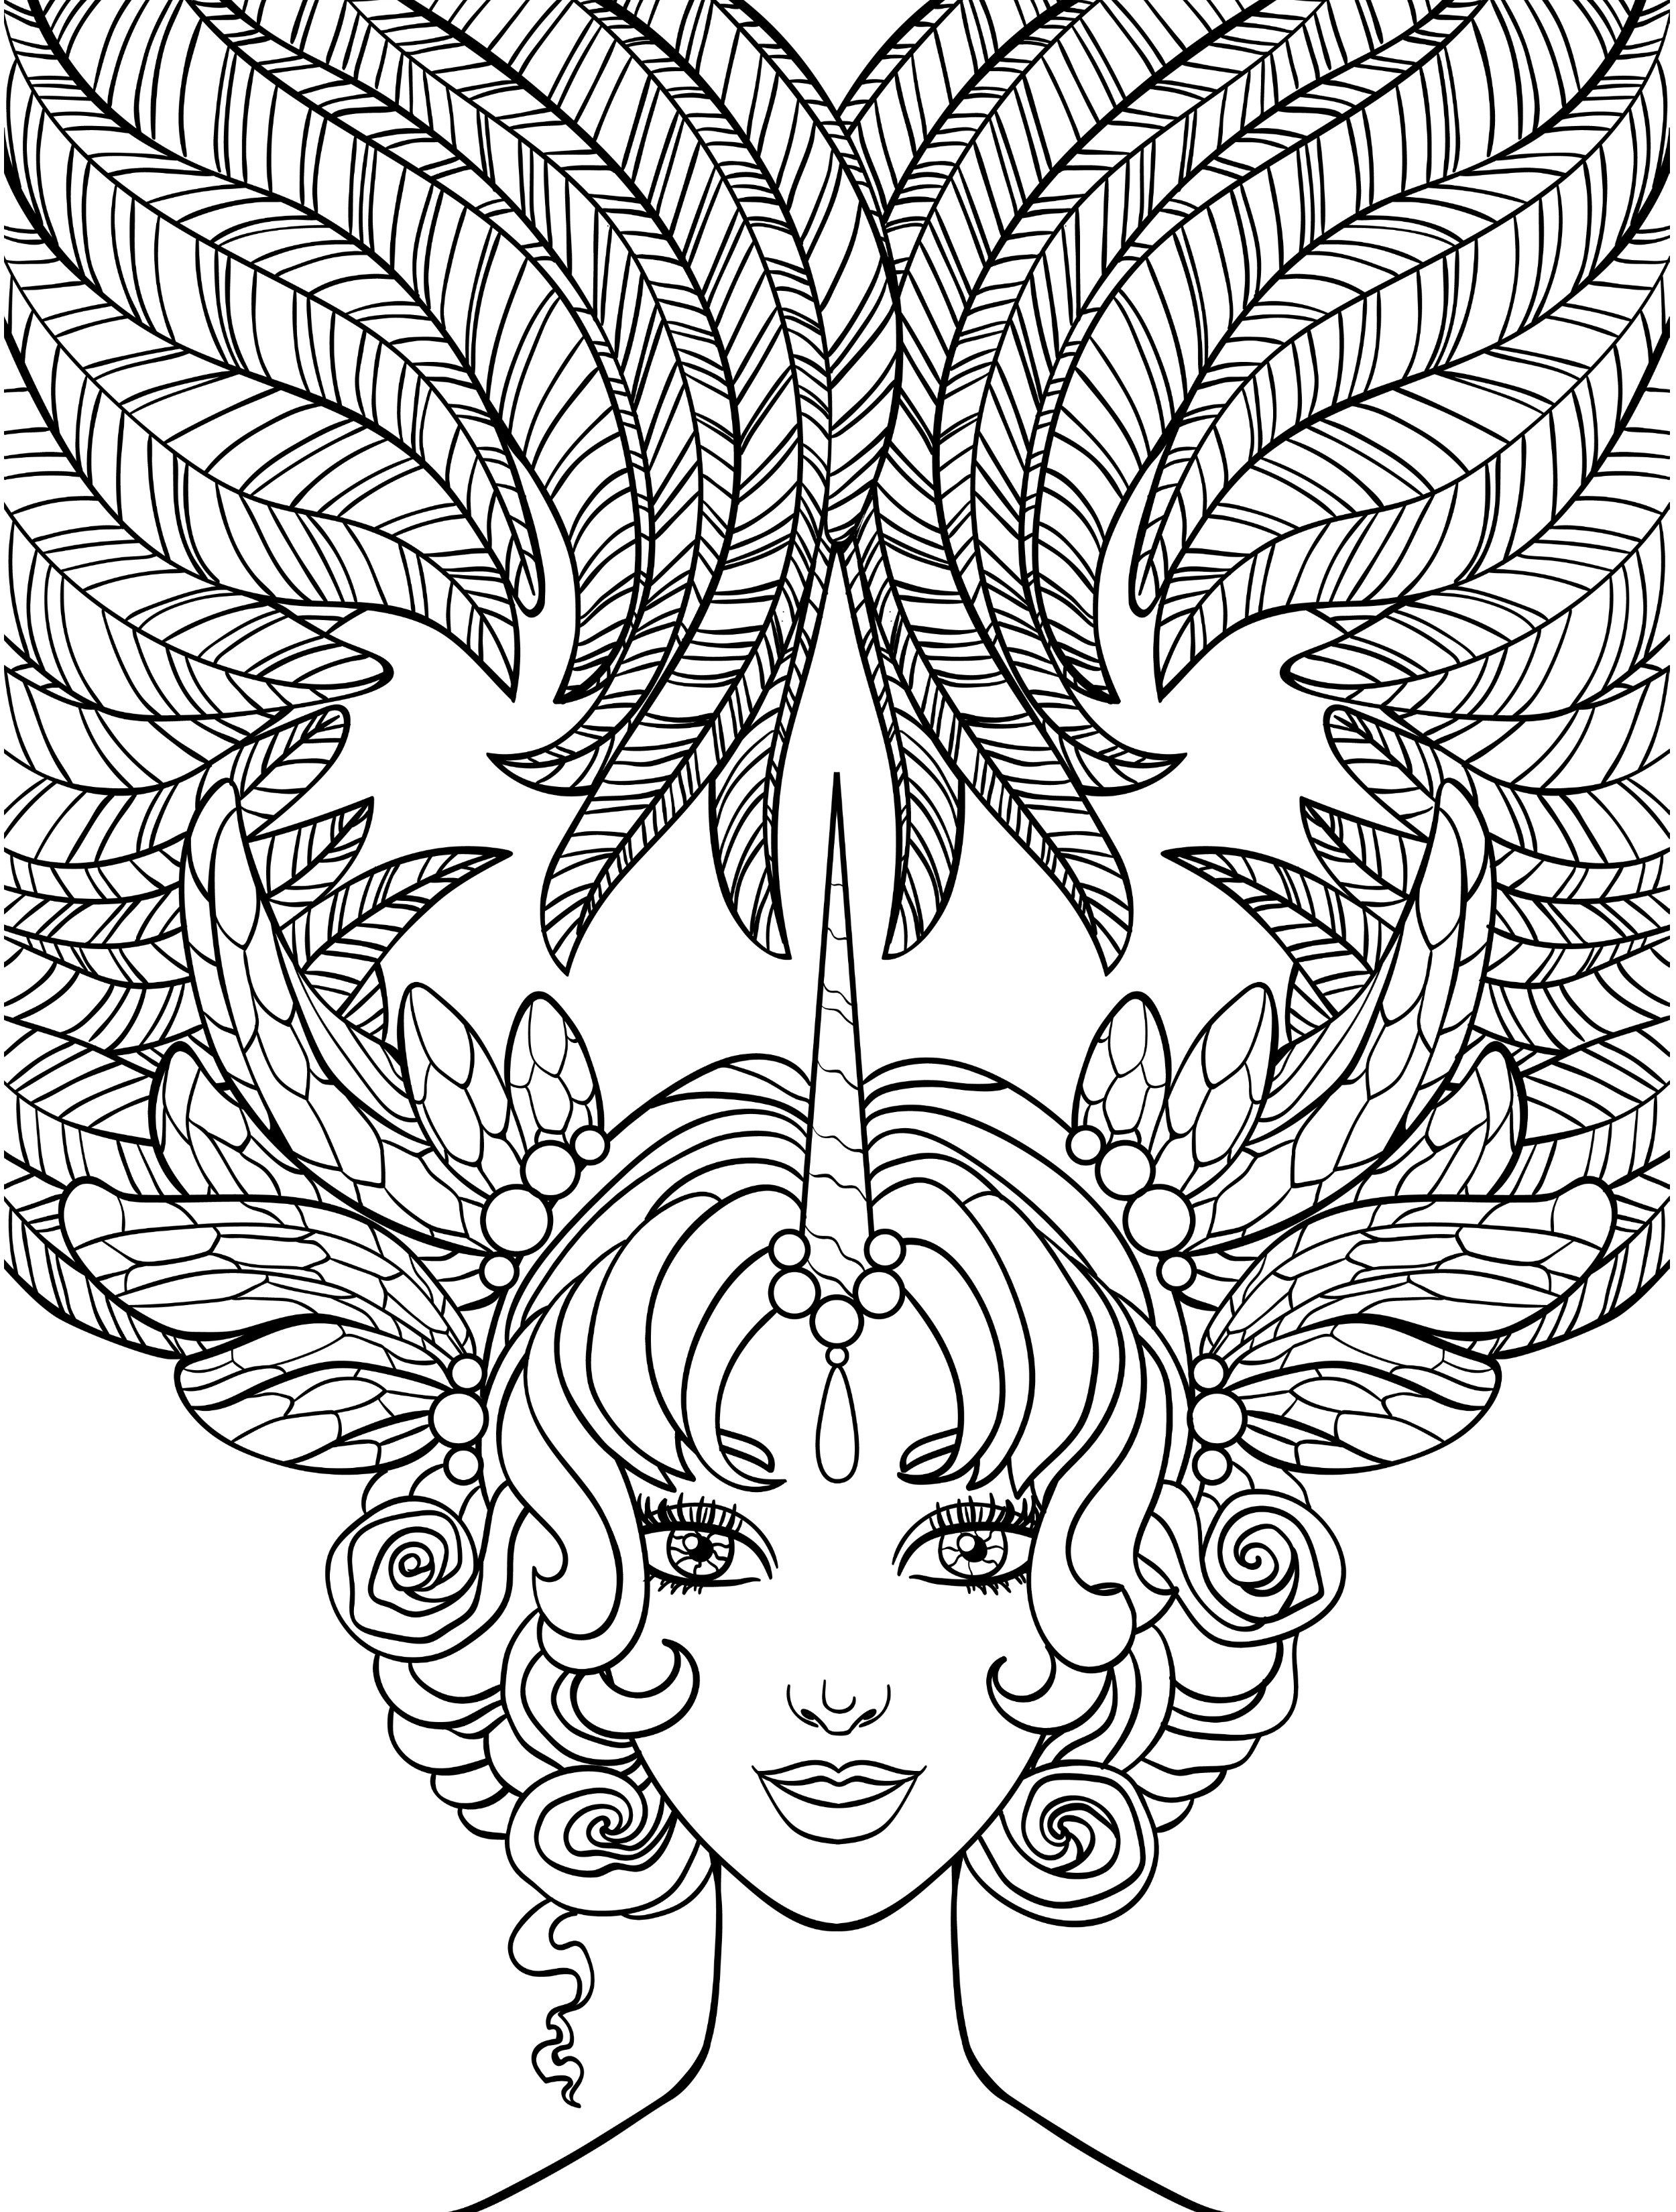 10 Crazy Hair Adult Coloring Pages Mandala Coloring Pages Adult